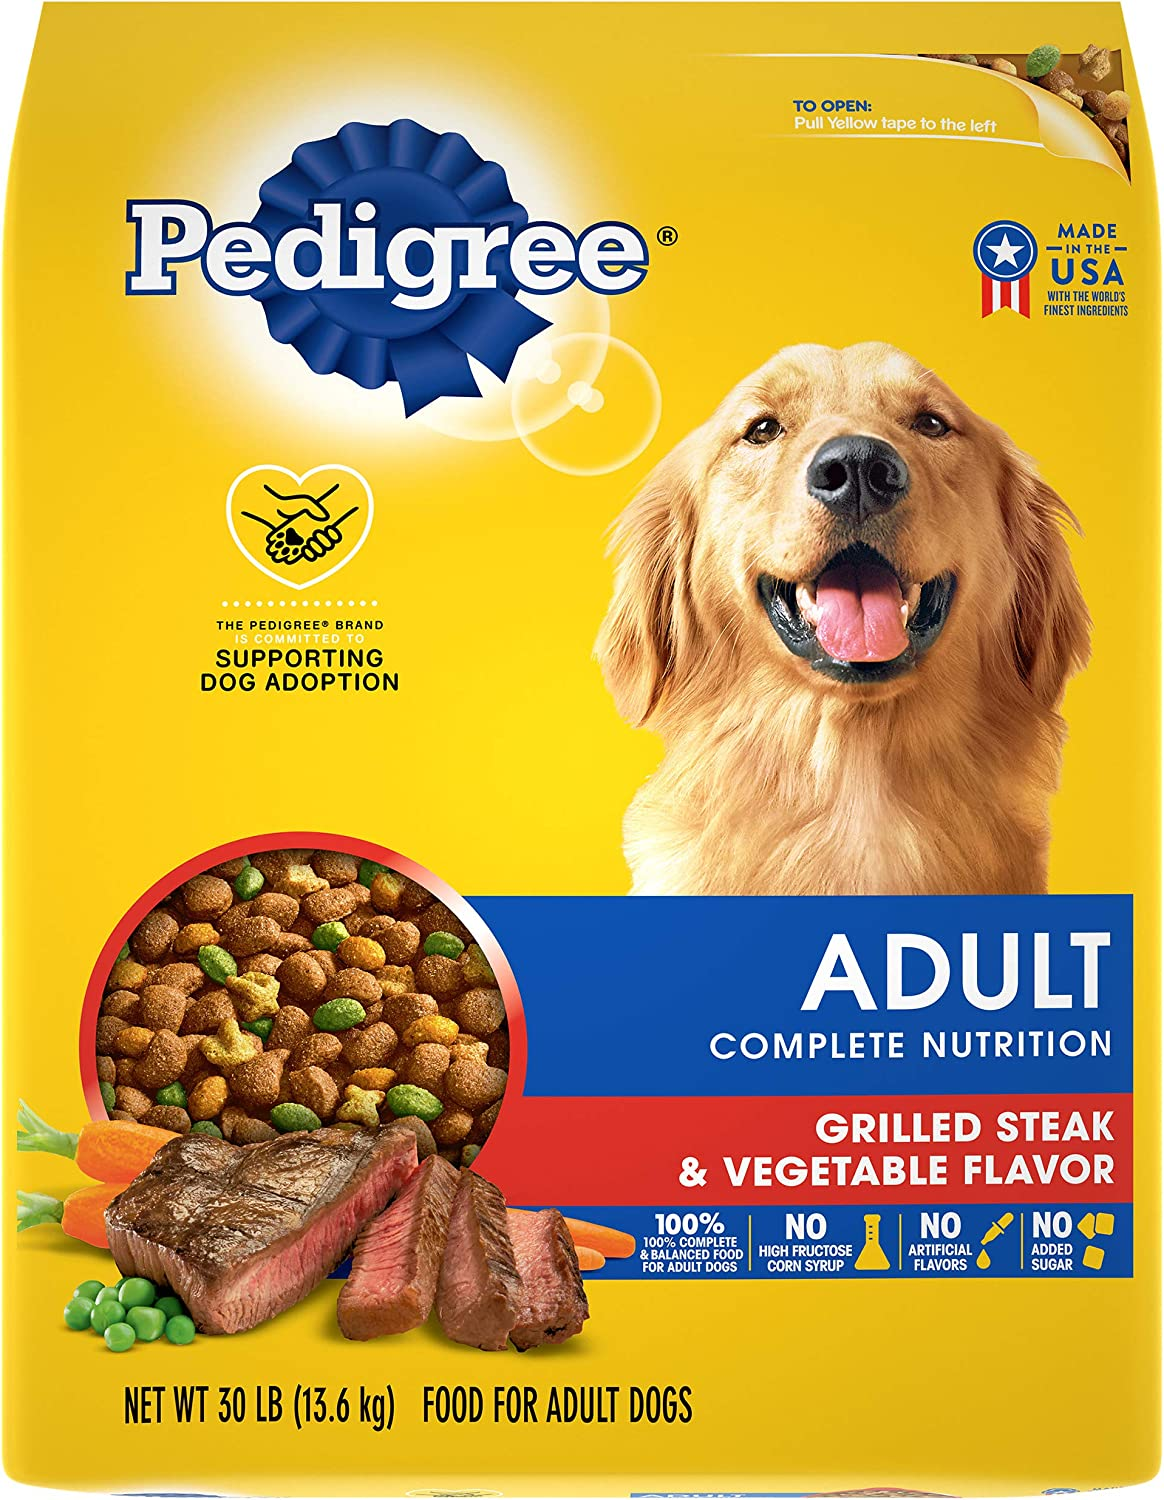 PEDIGREE Complete Nutrition Adult Dry Dog Food Grilled Steak & Vegetable Flavor Dog Kibble, 30 lb. Bag